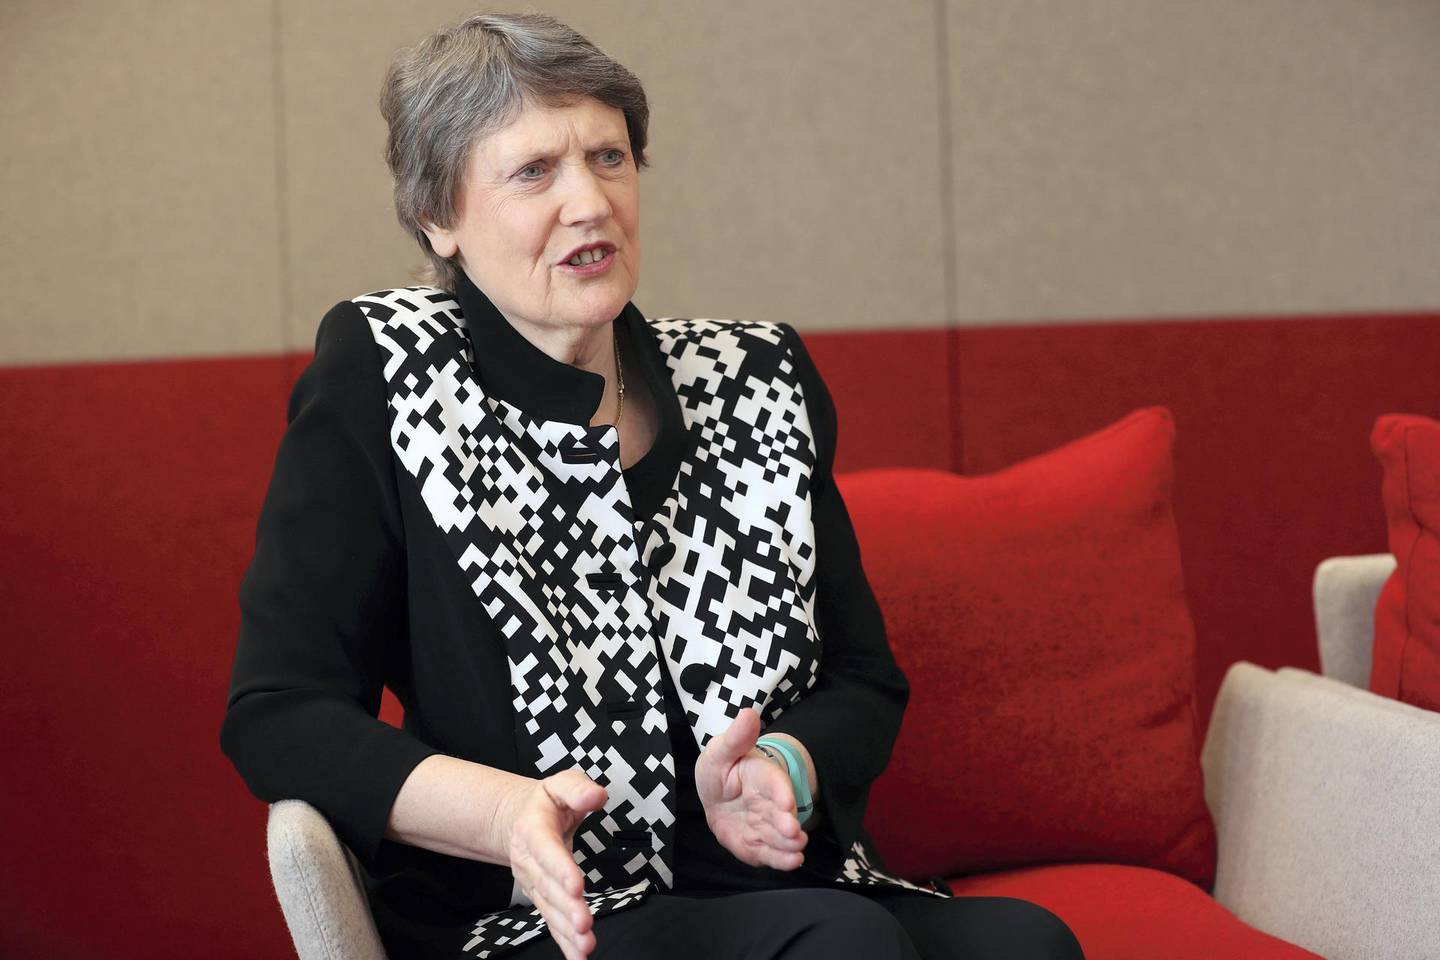 Abu Dhabi, United Arab Emirates - May 9th, 2018: Interview with Helen Clark, UNDP administrator and former prime minister of New Zealand. Wednesday, May 9th, 2018 at New Zealand Embassy, Abu Dhabi. Chris Whiteoak / The National